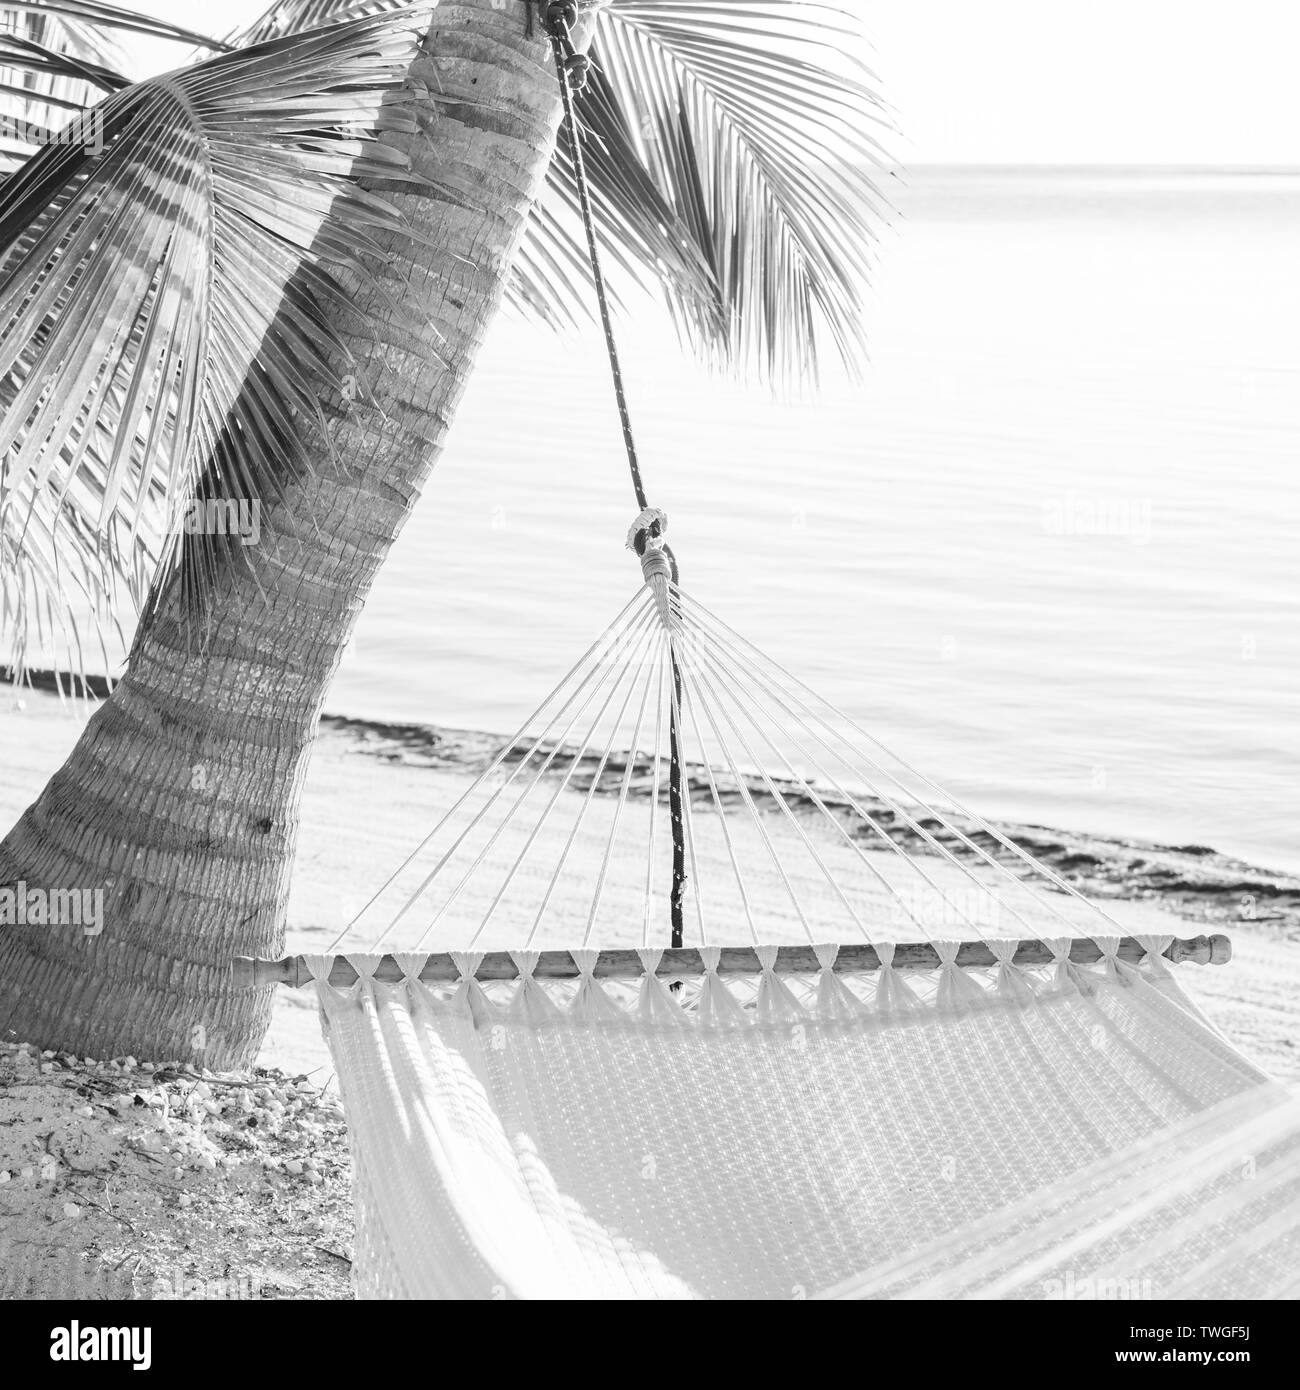 Peaceful vacation hammock on tropical palmtree beach in stunning black and white - Stock Image